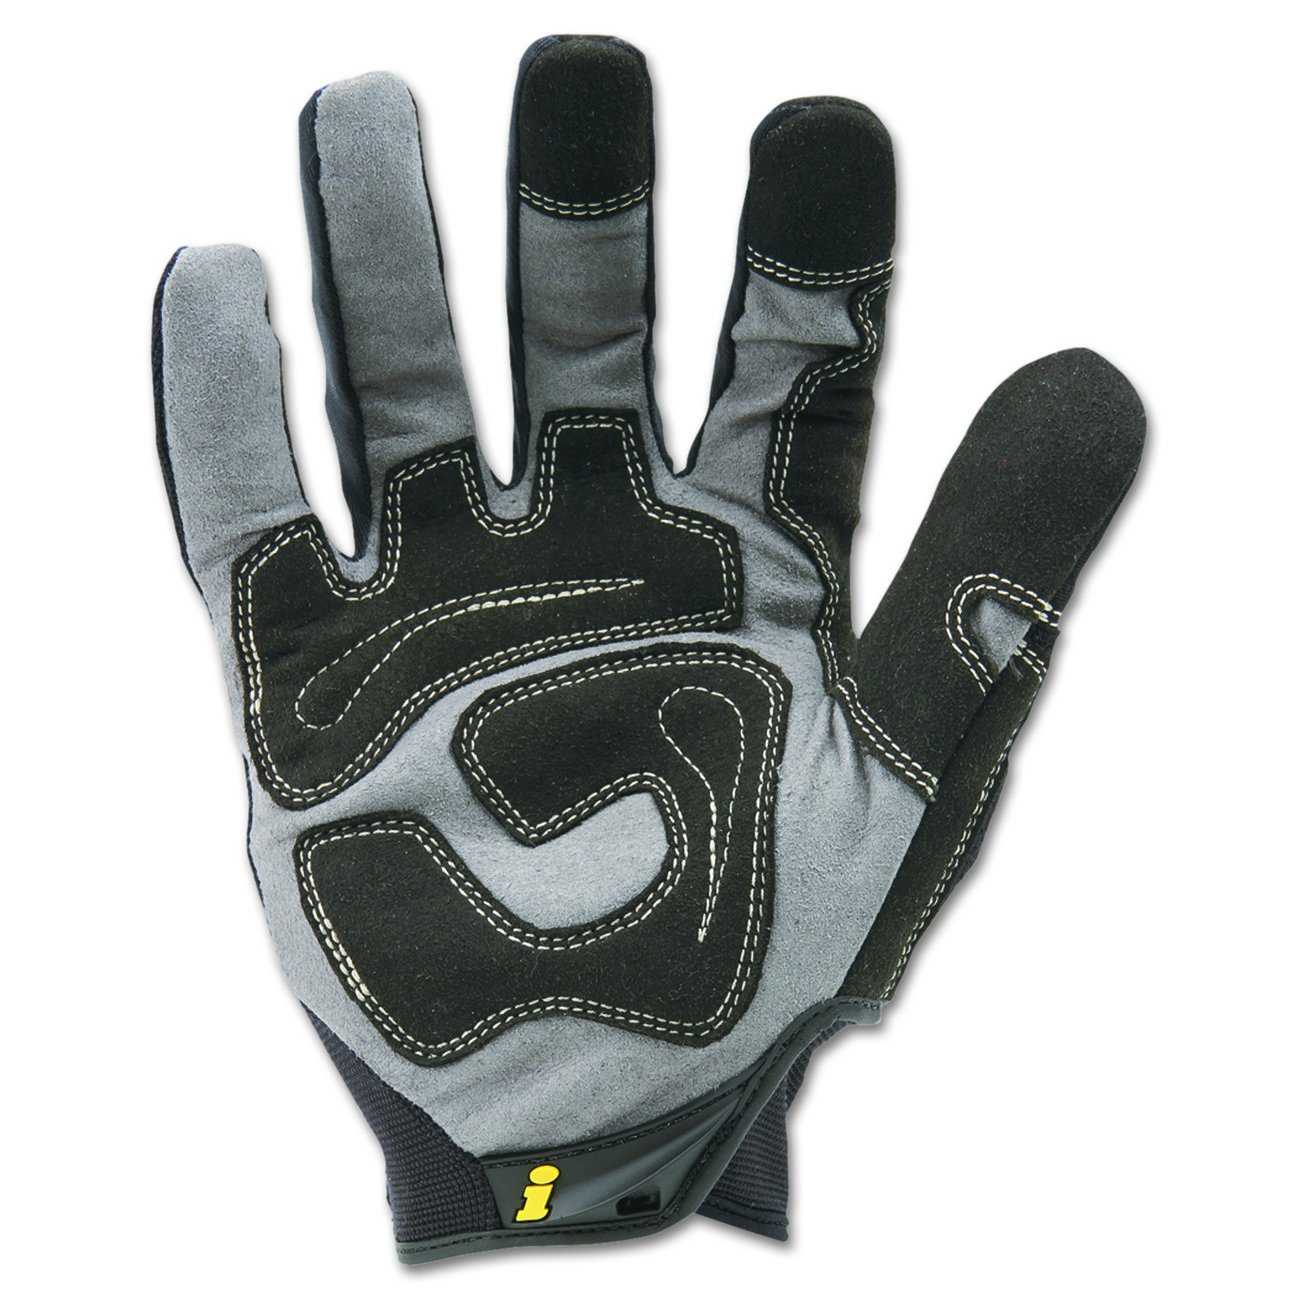 Ironclad General Utility Work Gloves GUG-04-L, Large by Ironclad (Image #2)